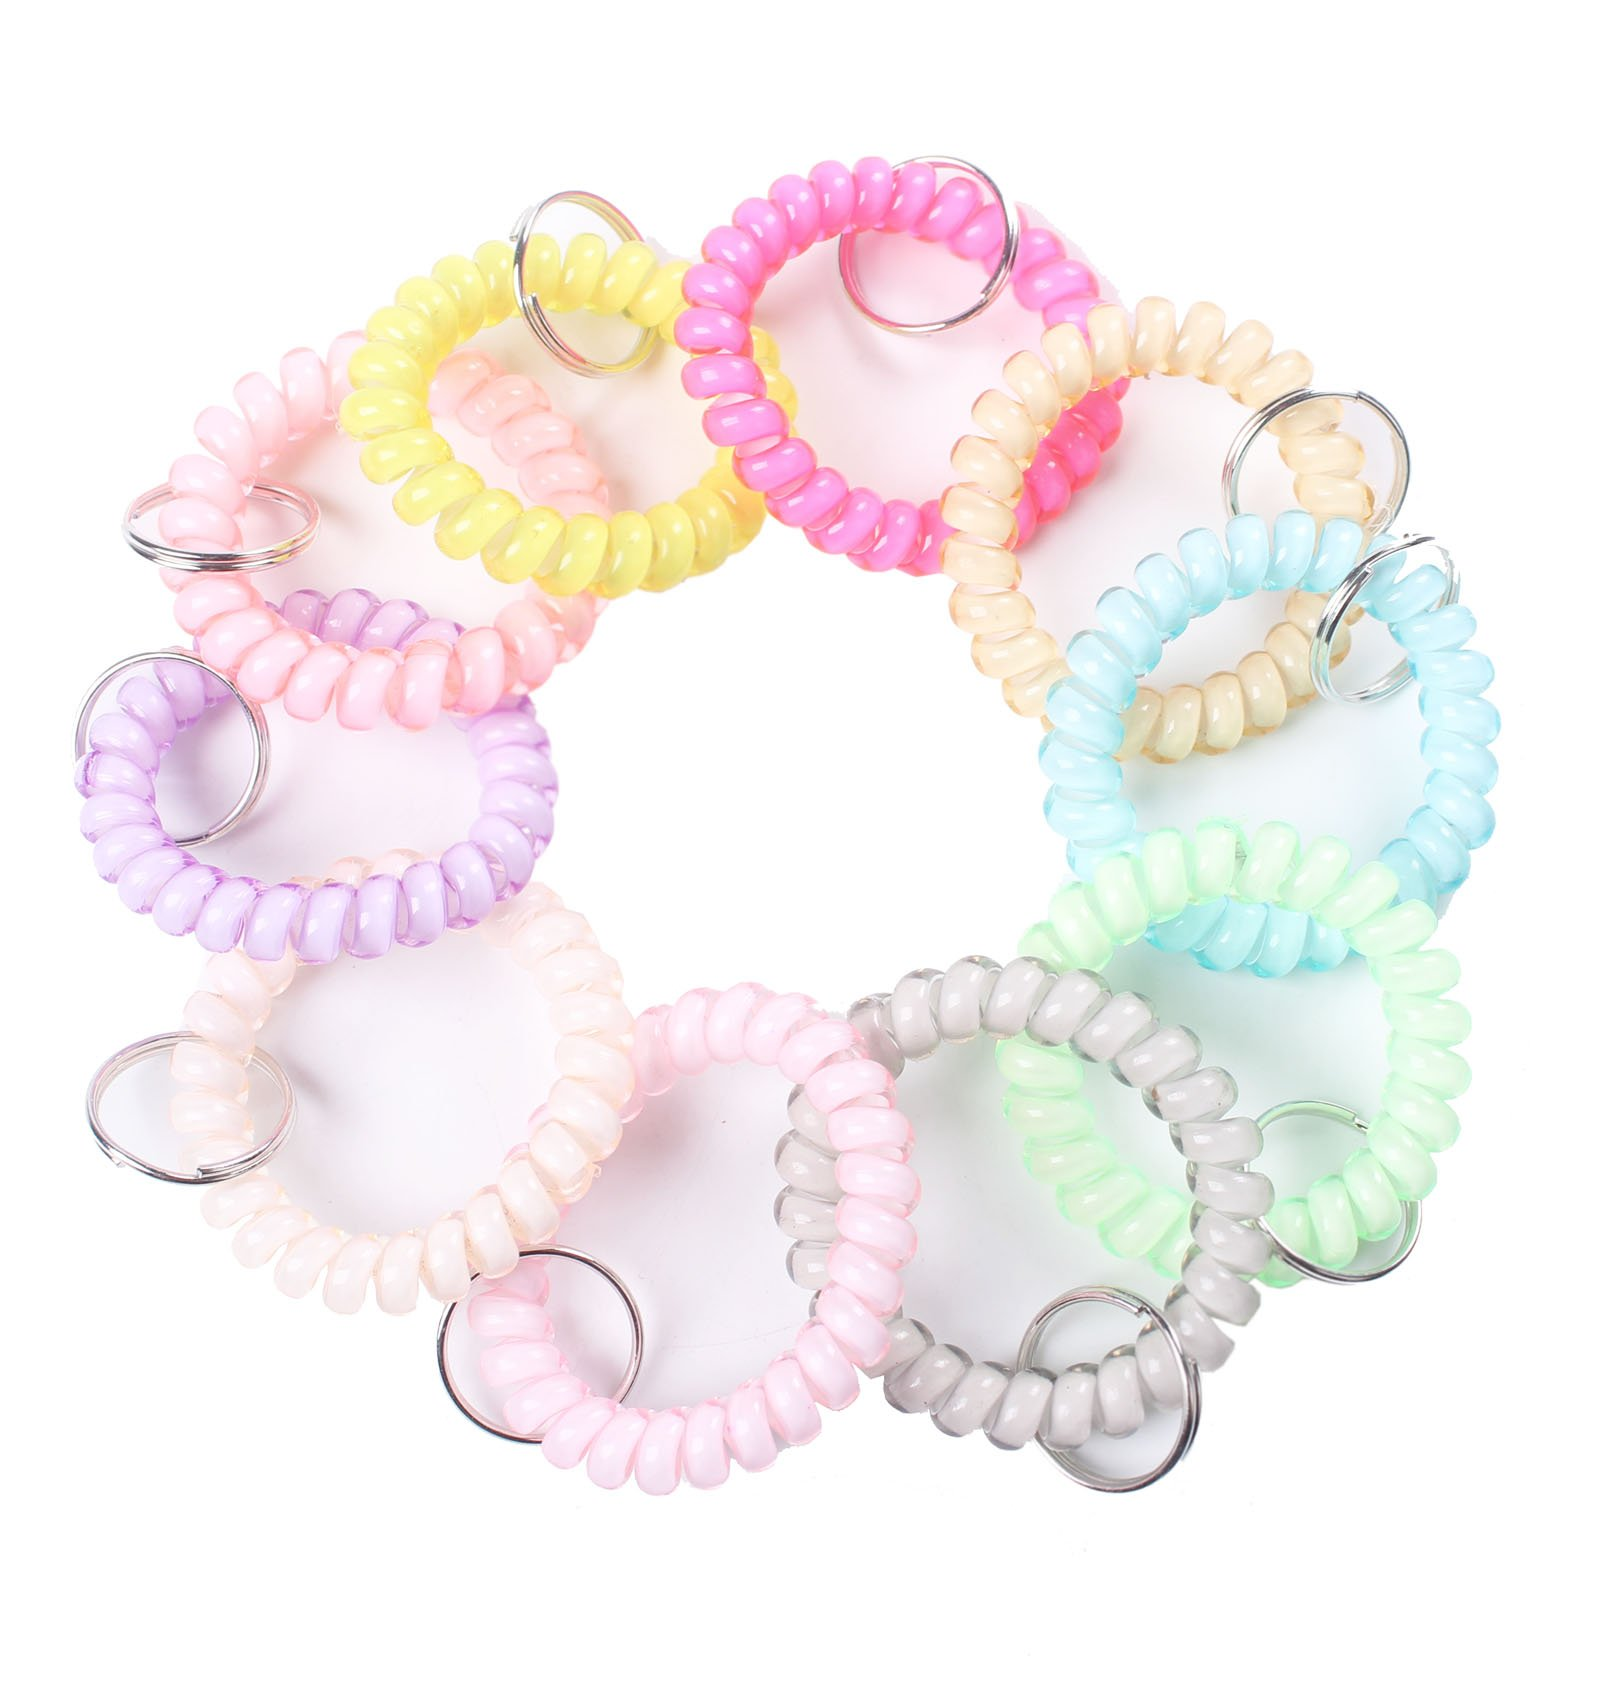 BIHRTC Pack of 30 Colorful Flexible Spiral Coil Stretchable Spring Wristband with Key Ring for Office, Workshop, Shopping Mall, Sauna and Outdoor Activities Place (Colorful-4)